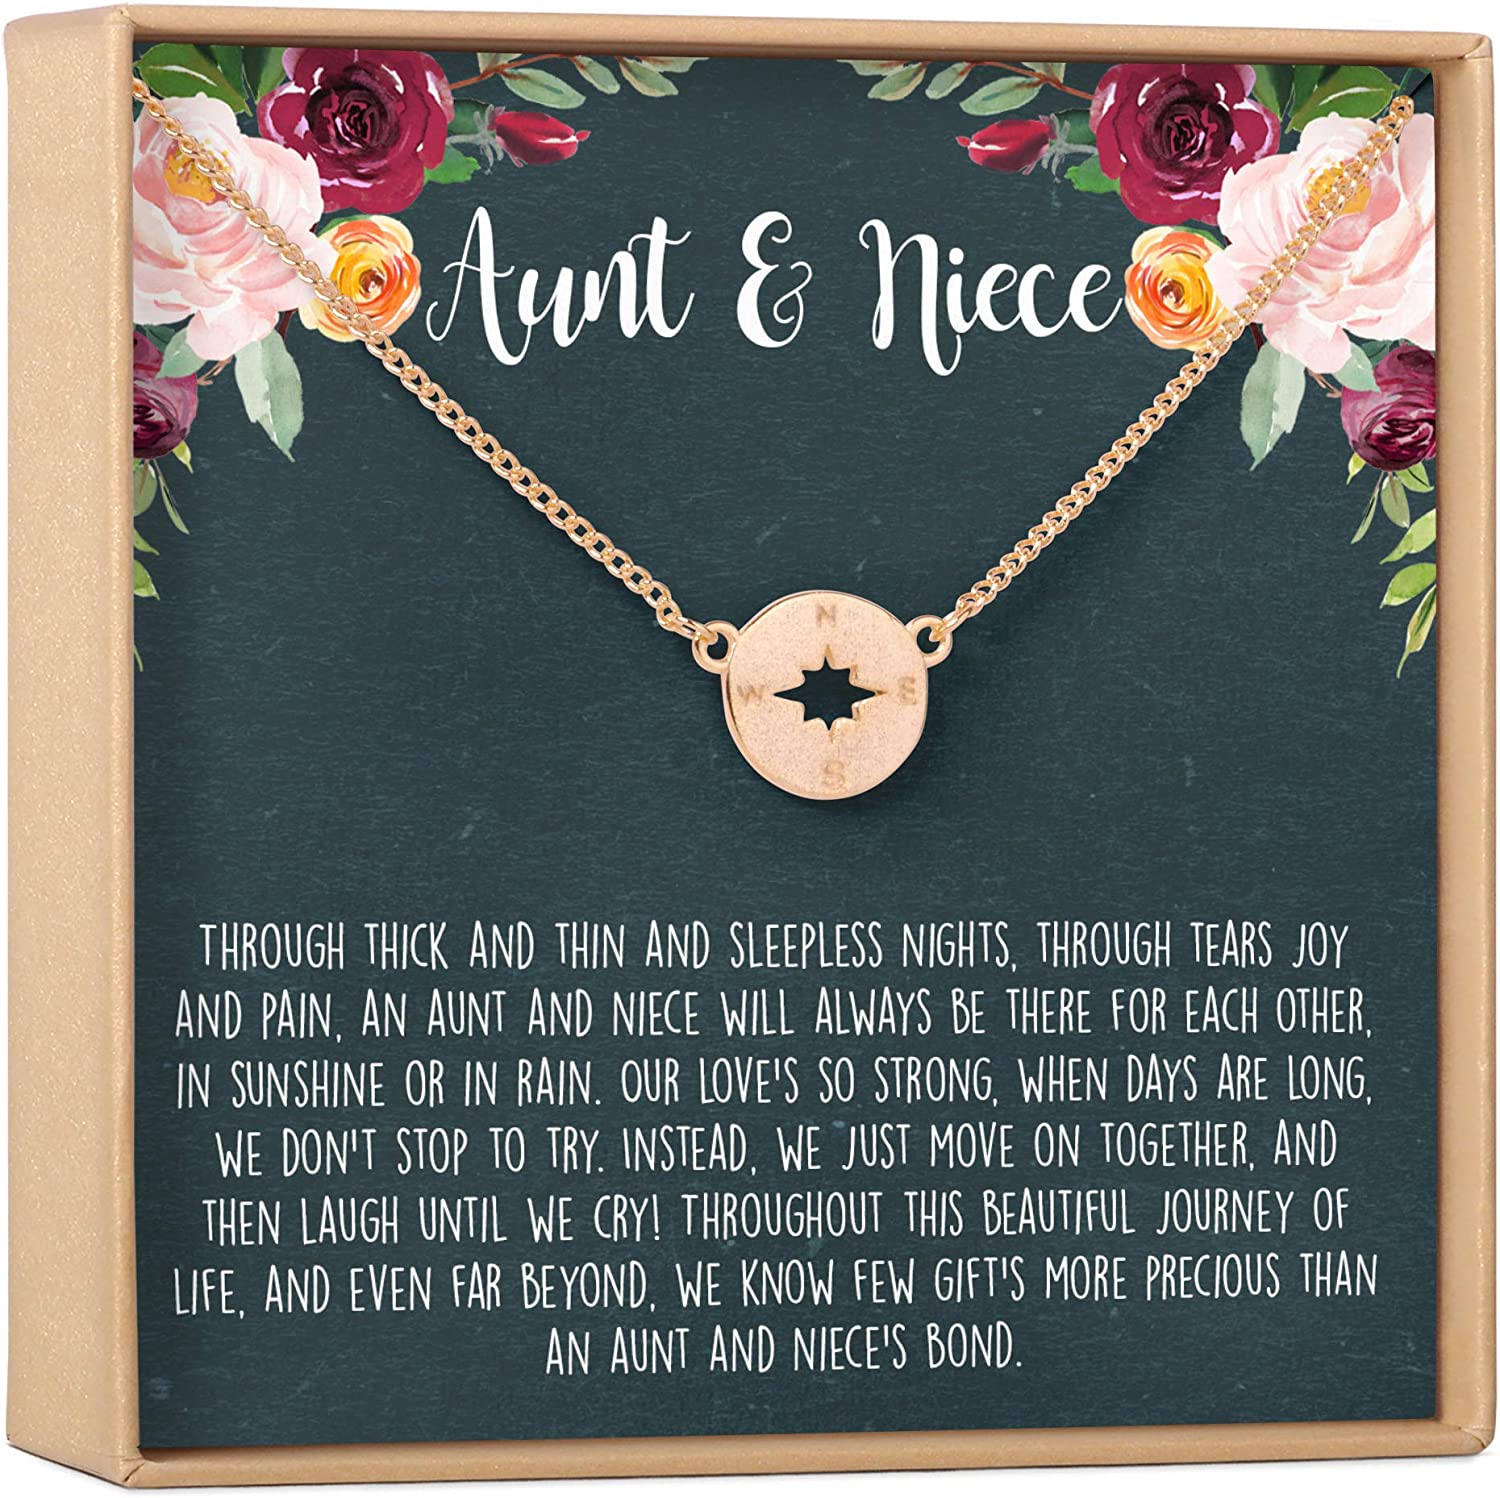 Aunt-Niece Necklace - All items free shipping Indianapolis Mall Gift Jewelry Ideas Heartfelt Card